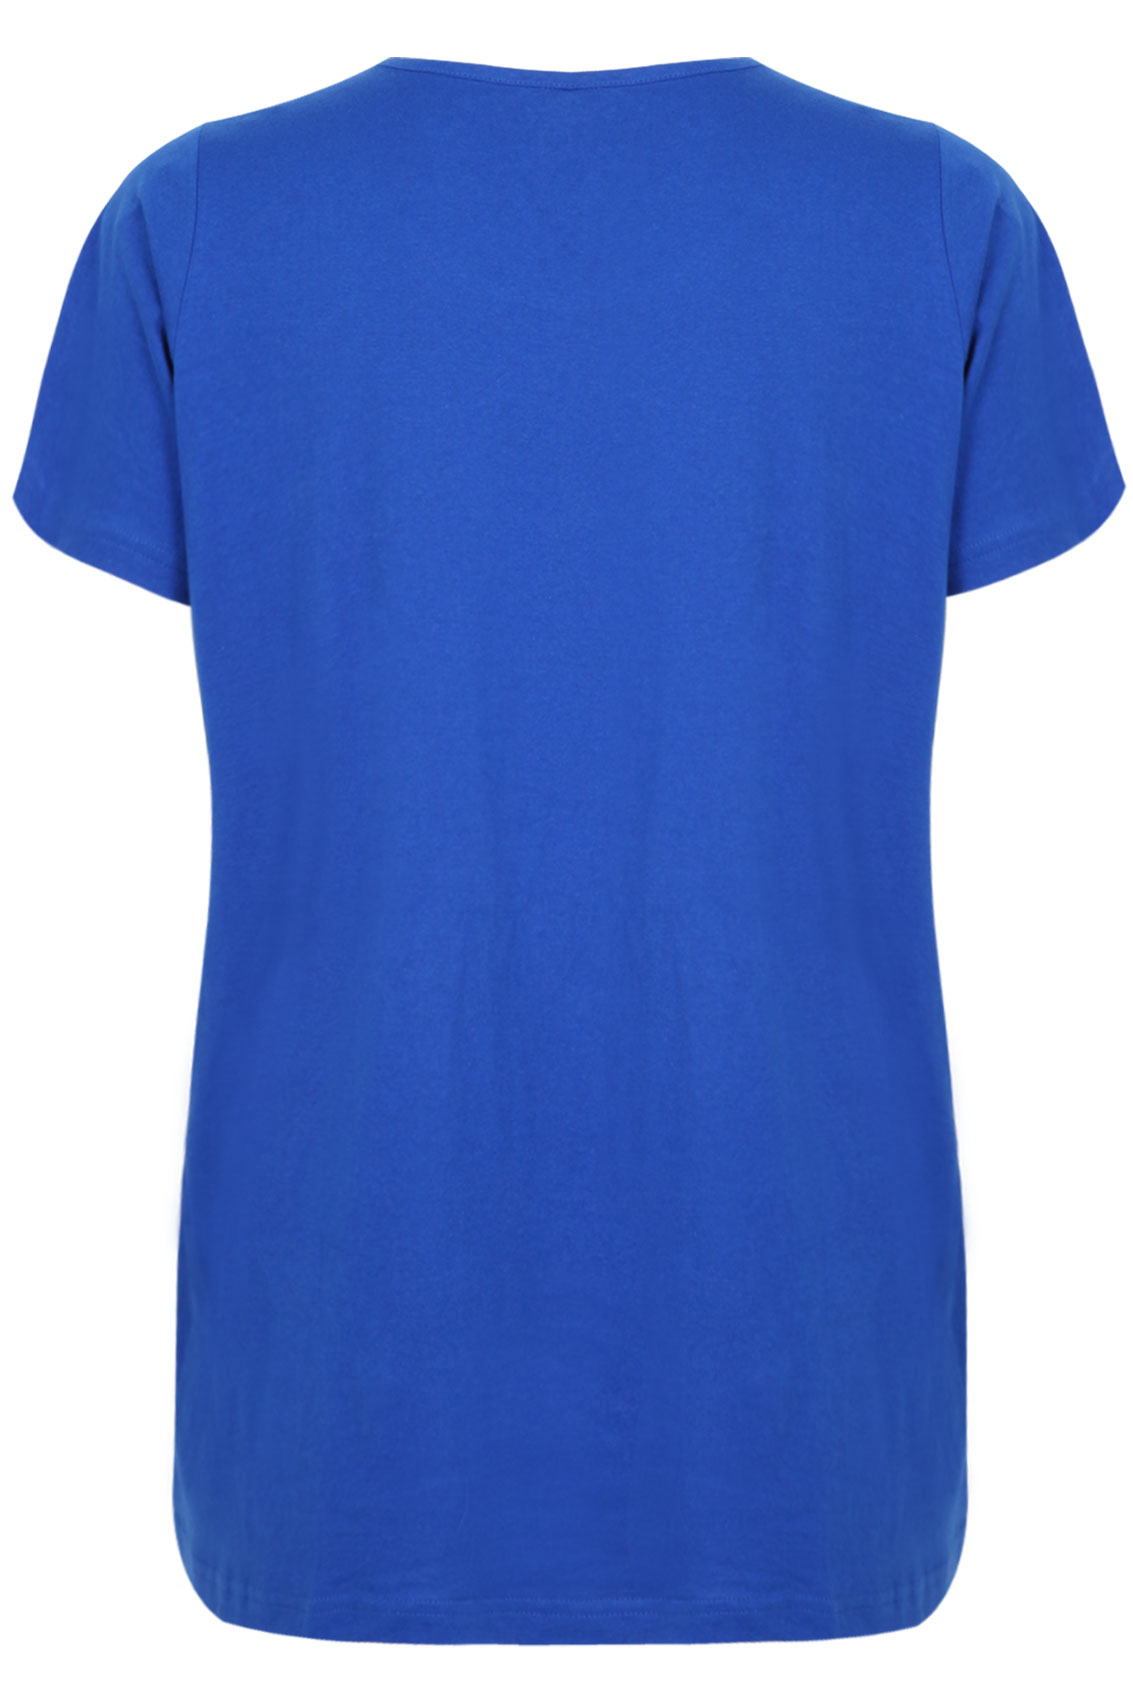 Completely new Cobalt Blue Short Sleeve Scoop Neck Basic T-shirt plus Size 16 to 36 XC47